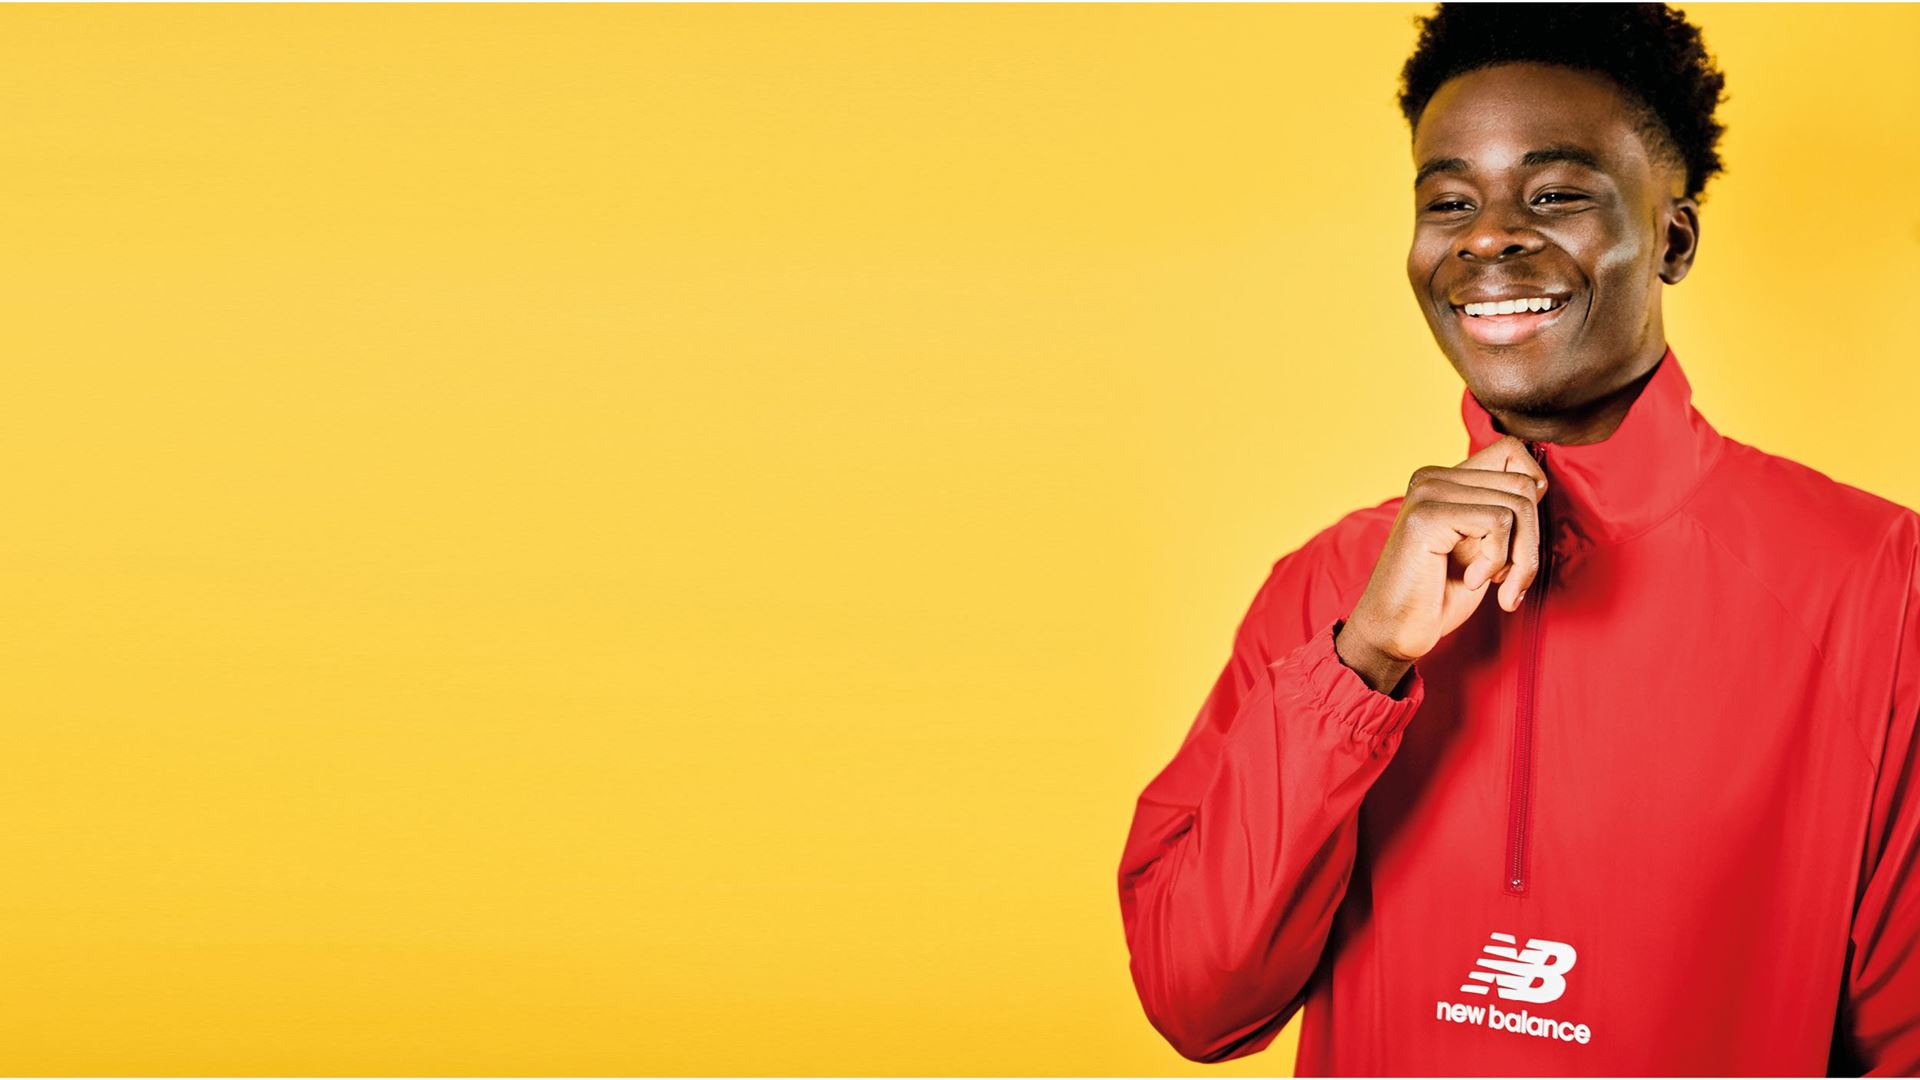 New Balance teams up with Bukayo Saka